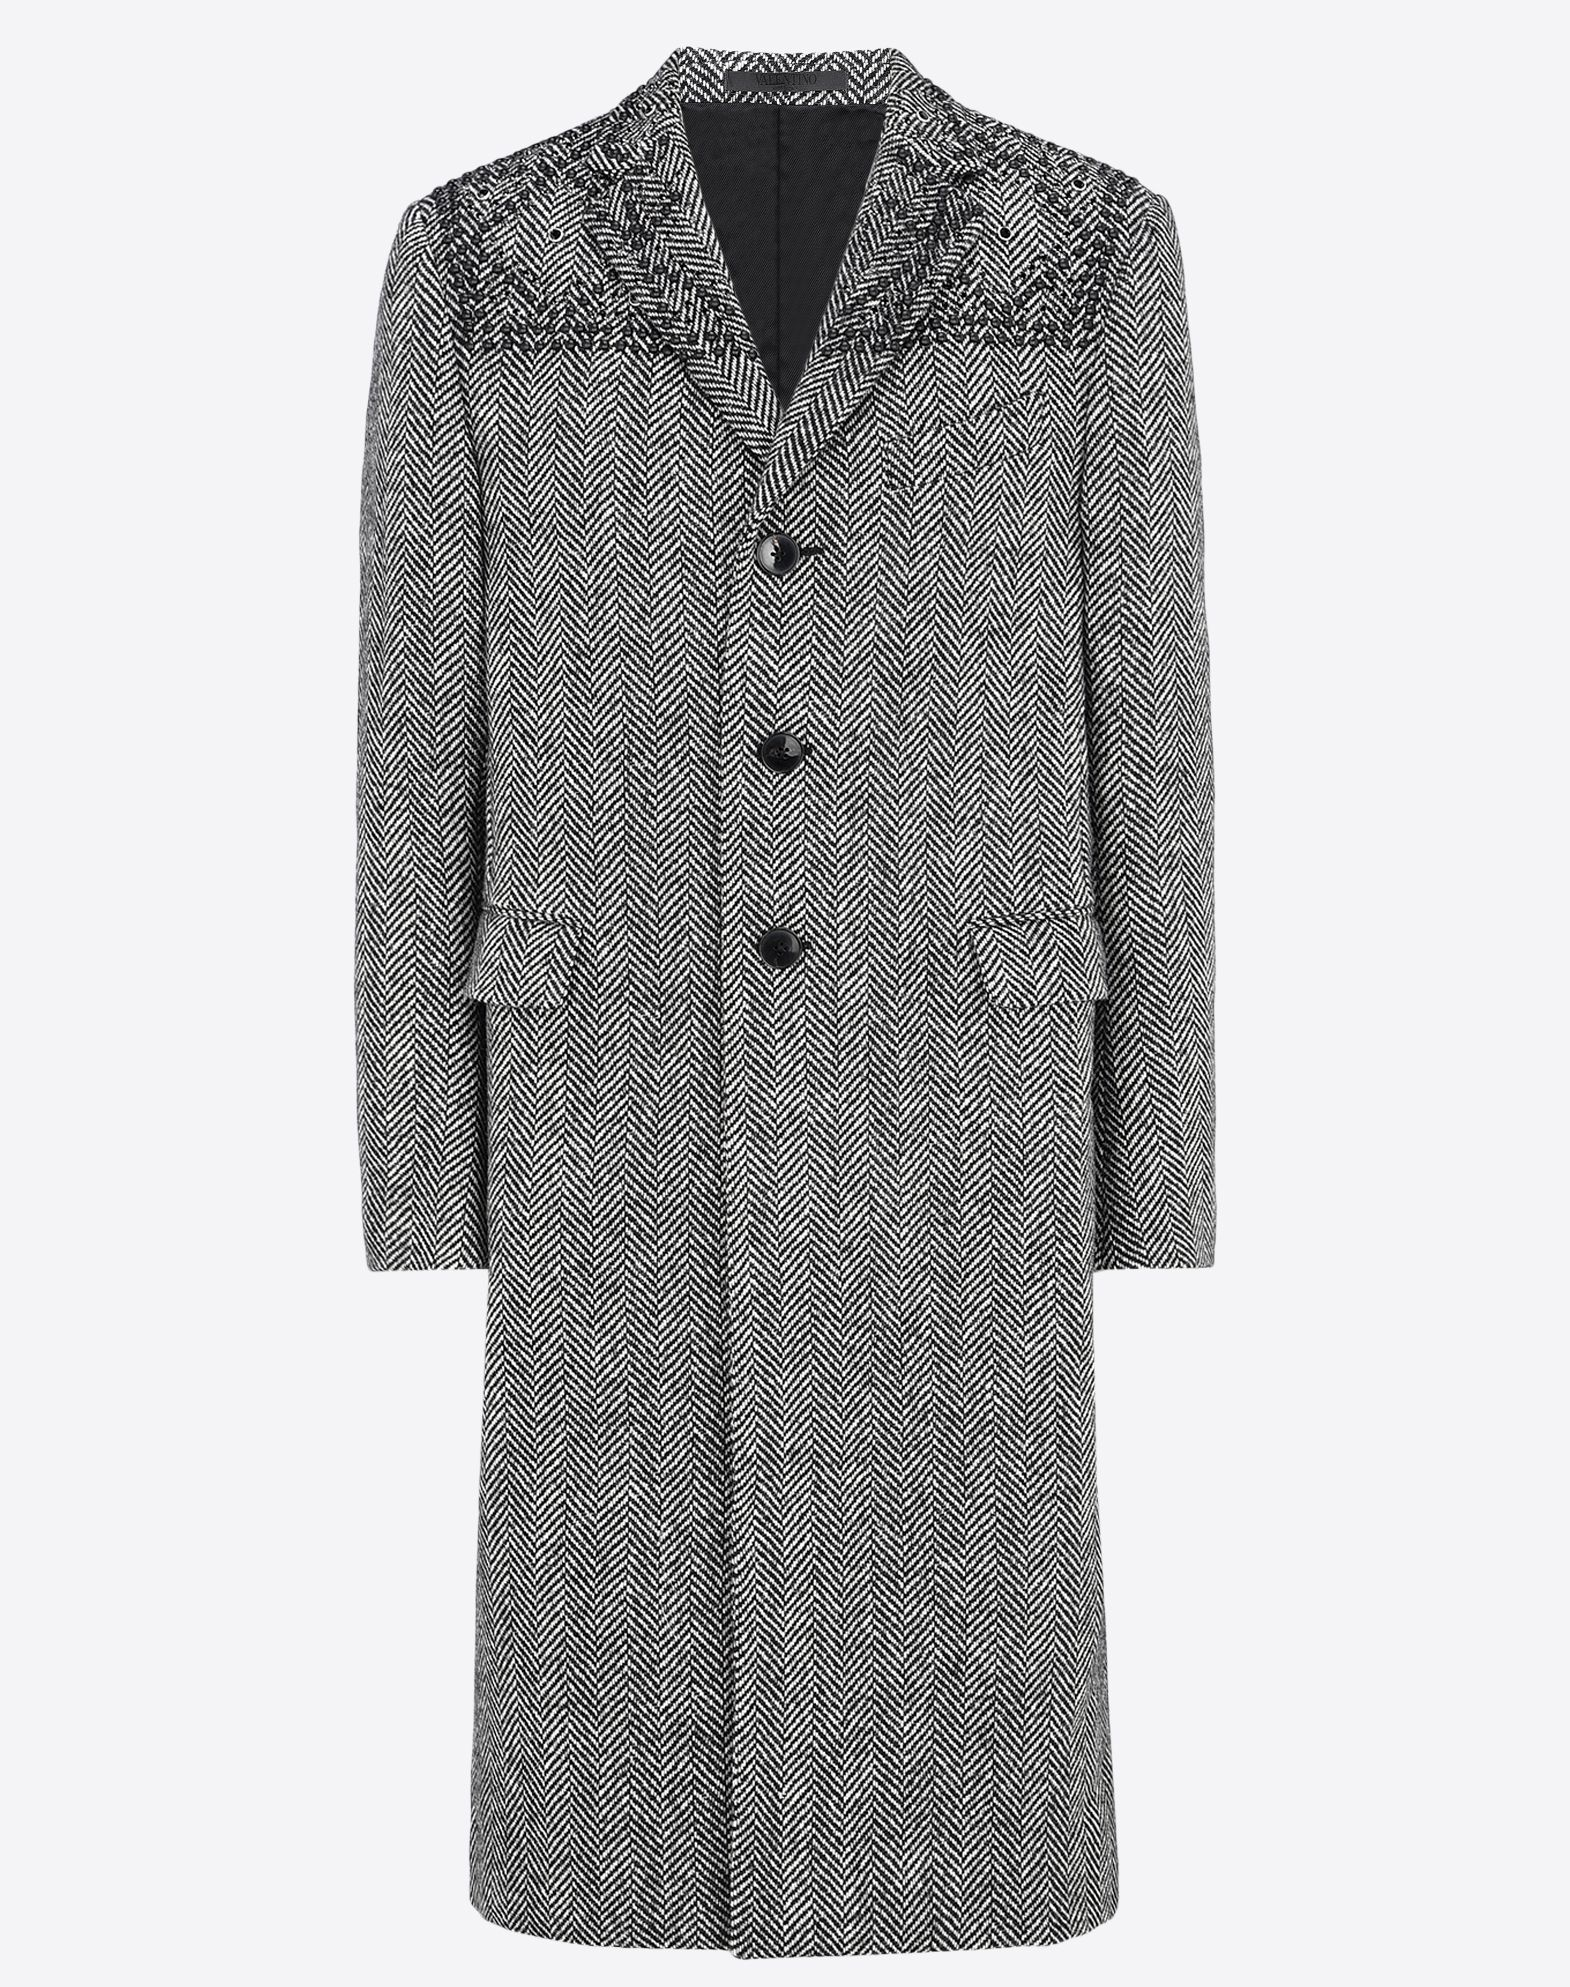 VALENTINO Contrasting applications Tweed Herringbone Lapel collar Buttoned cuffs Three pockets Two inside pockets 3 buttons Rear slit Lined interior Long sleeves  41655800rg